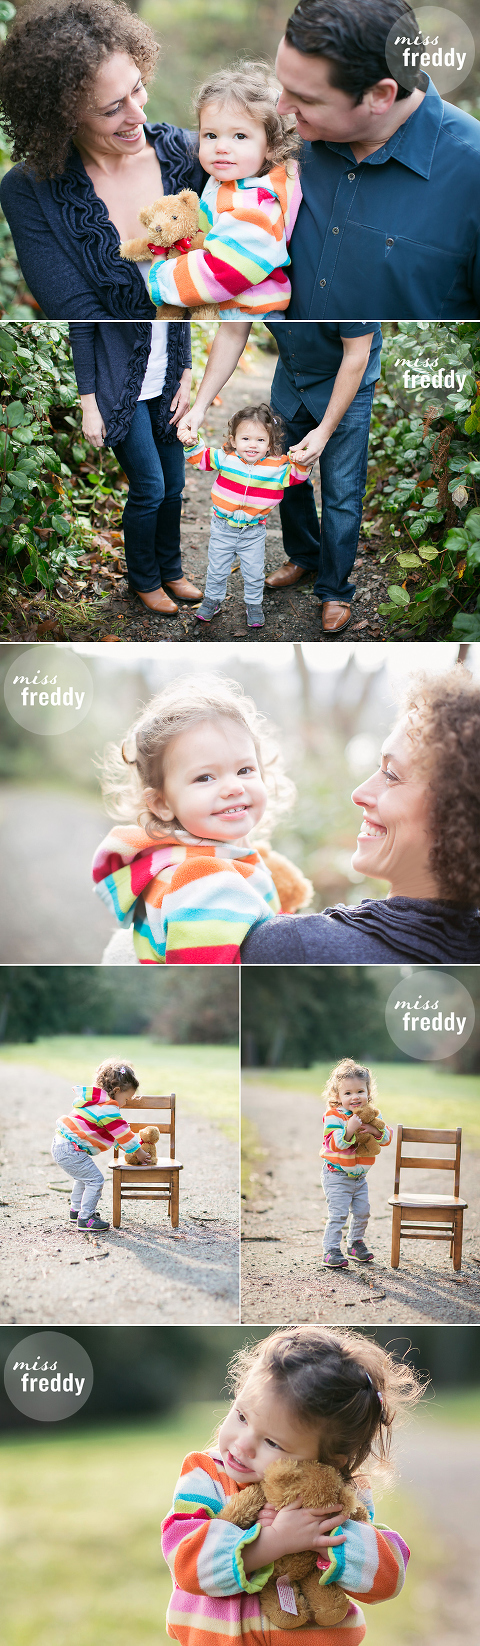 Love this family photo session by Miss Freddy, West Seattle kids photographer.